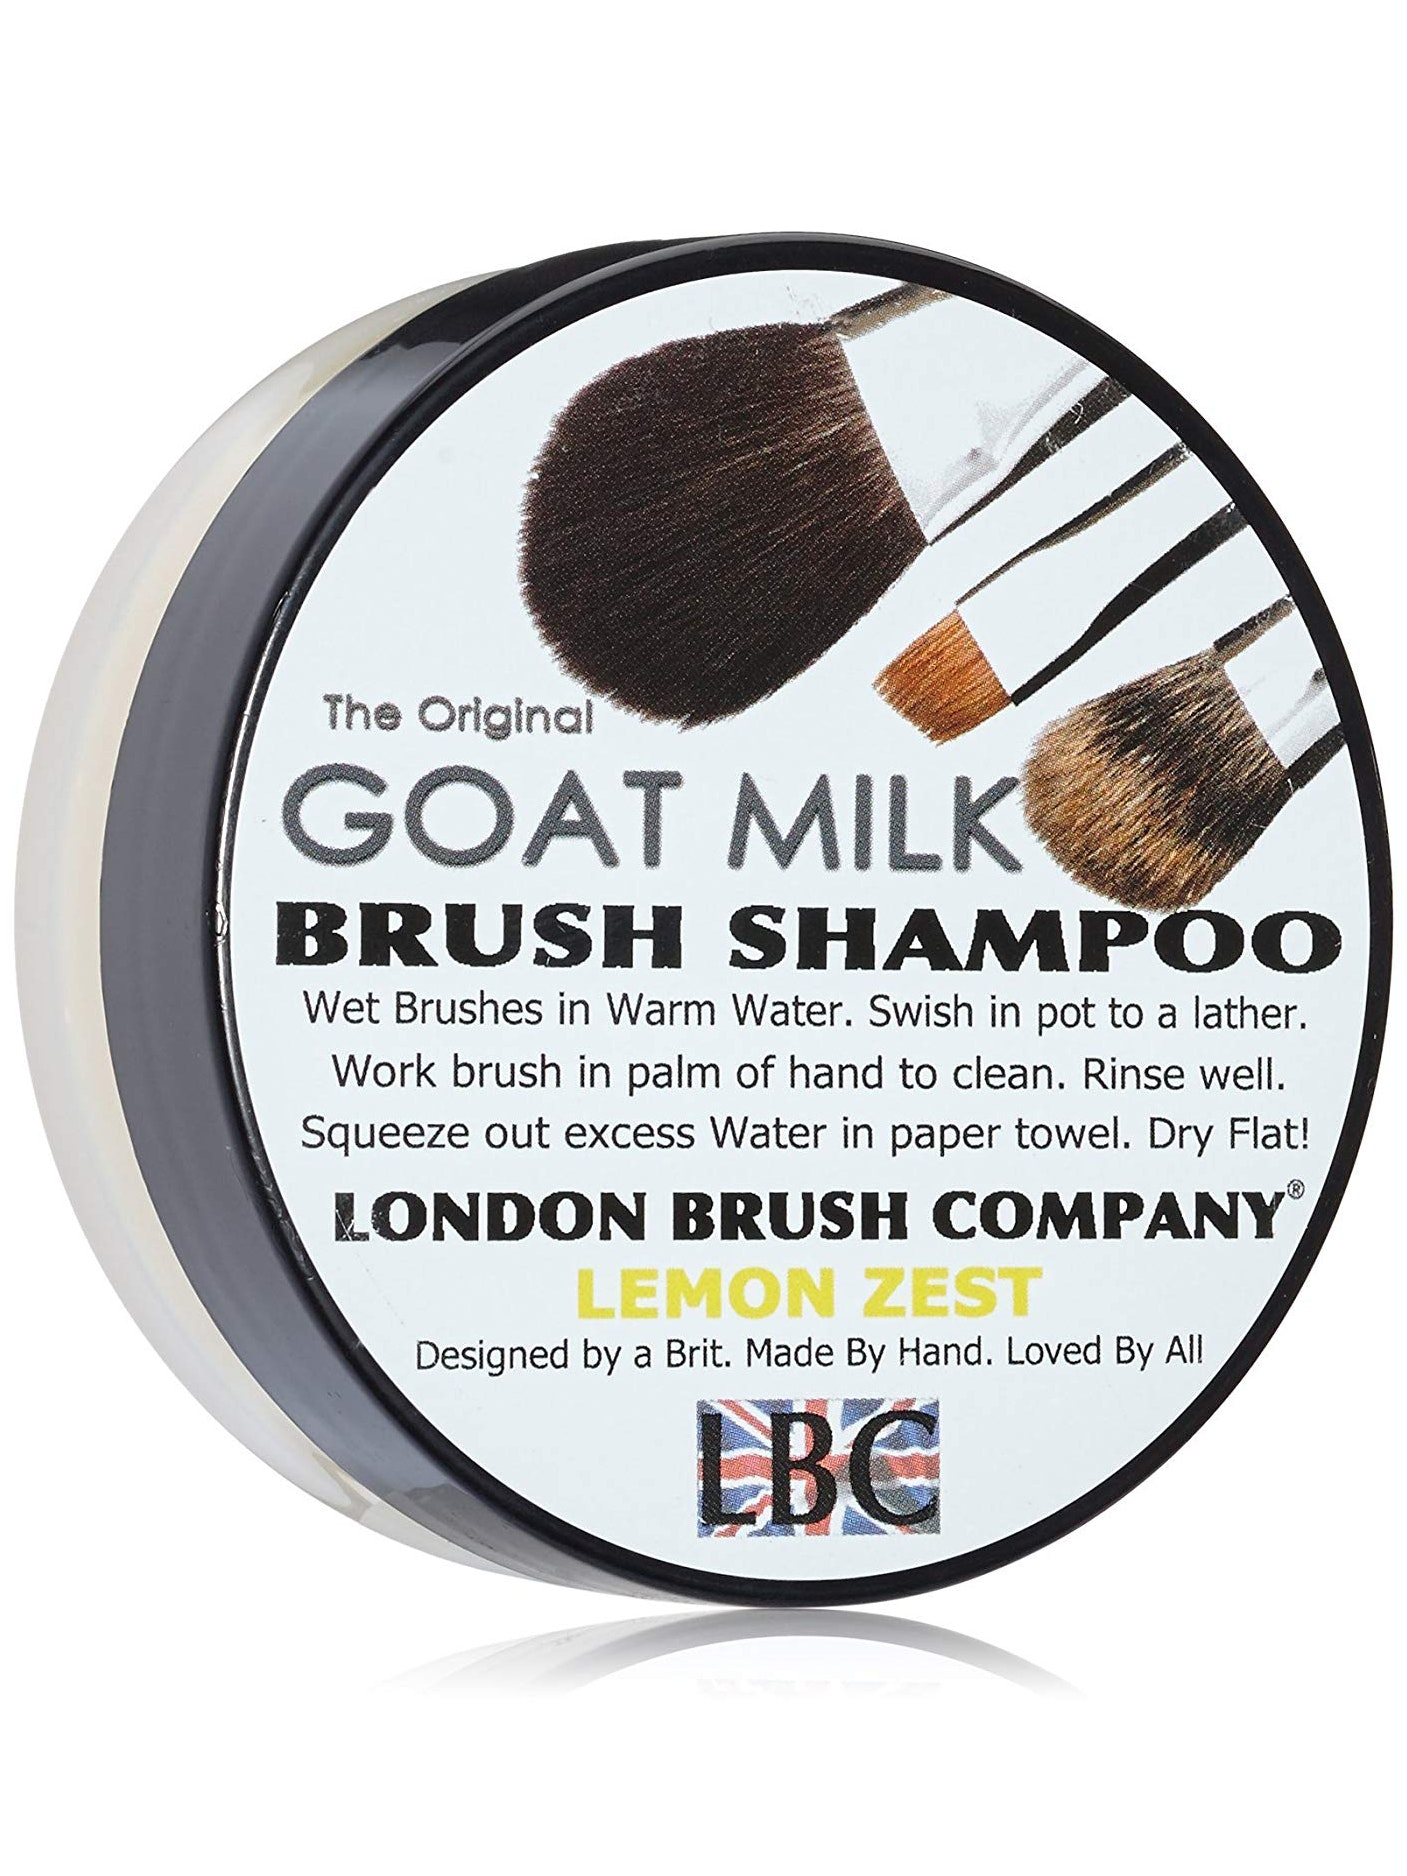 London Brush Company Goat Milk Brush Shampoo